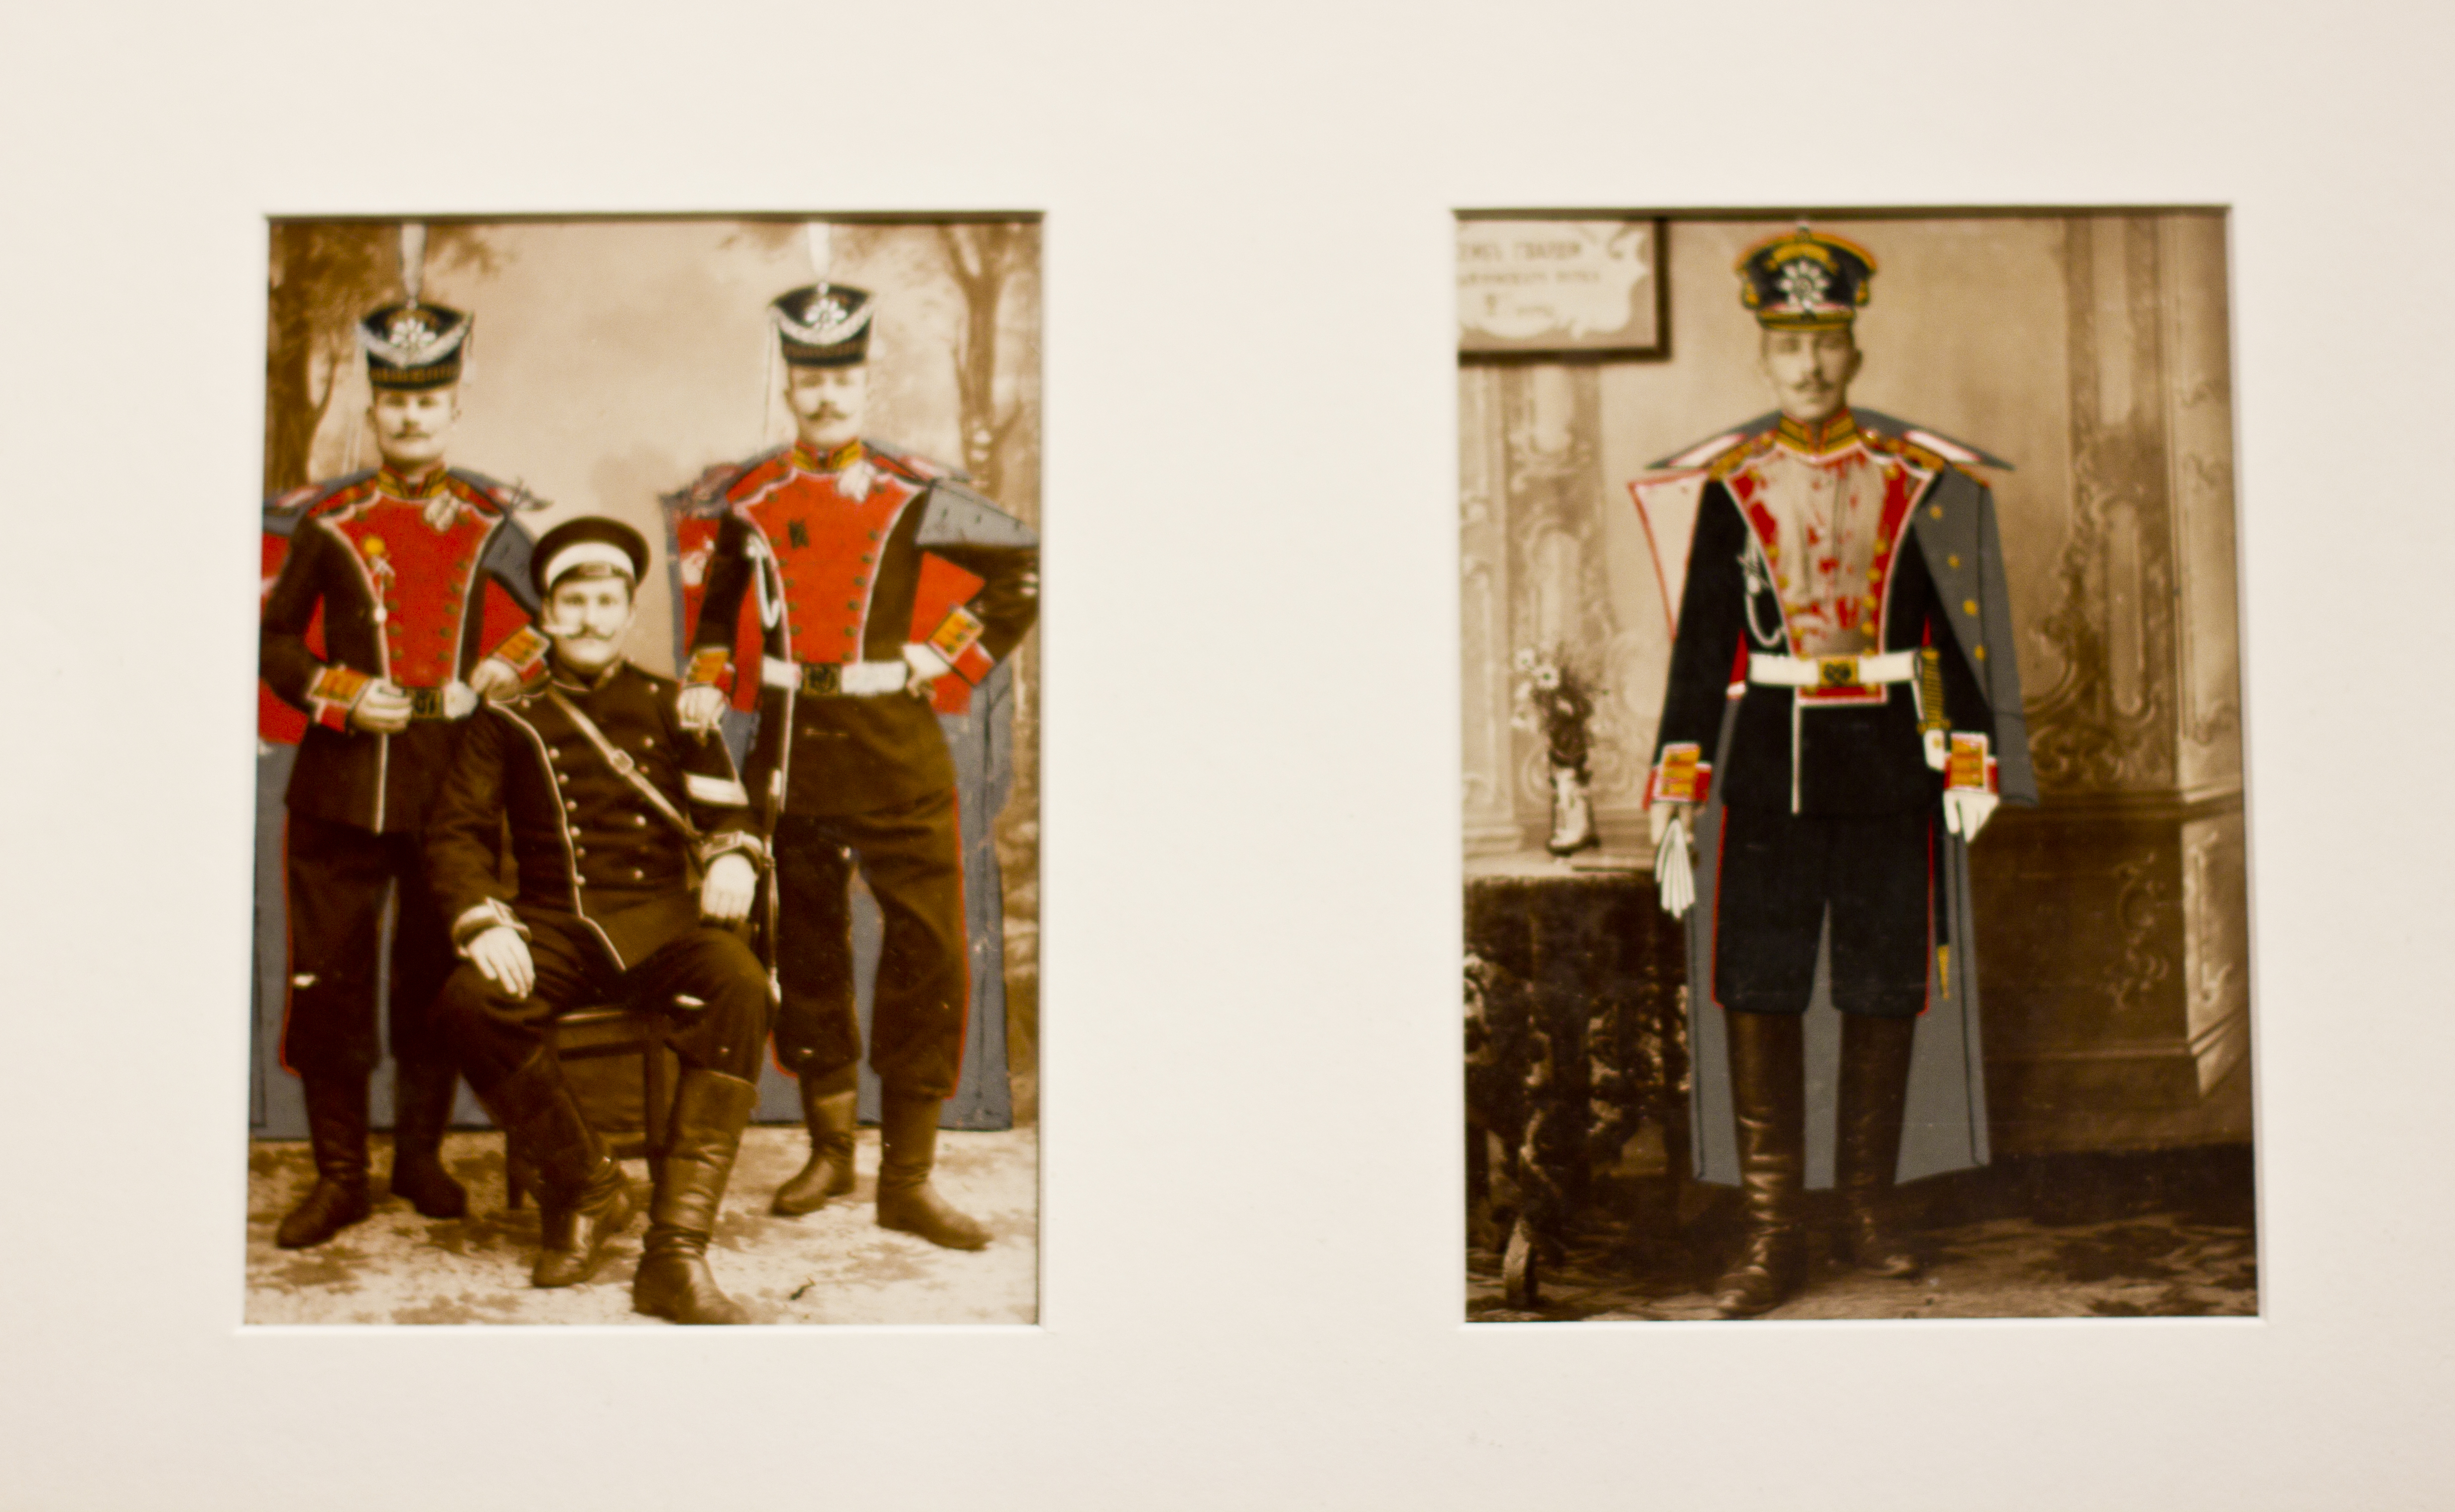 Primrose early russian colour photography photographers gallery london tapeparade laila blog tape parade